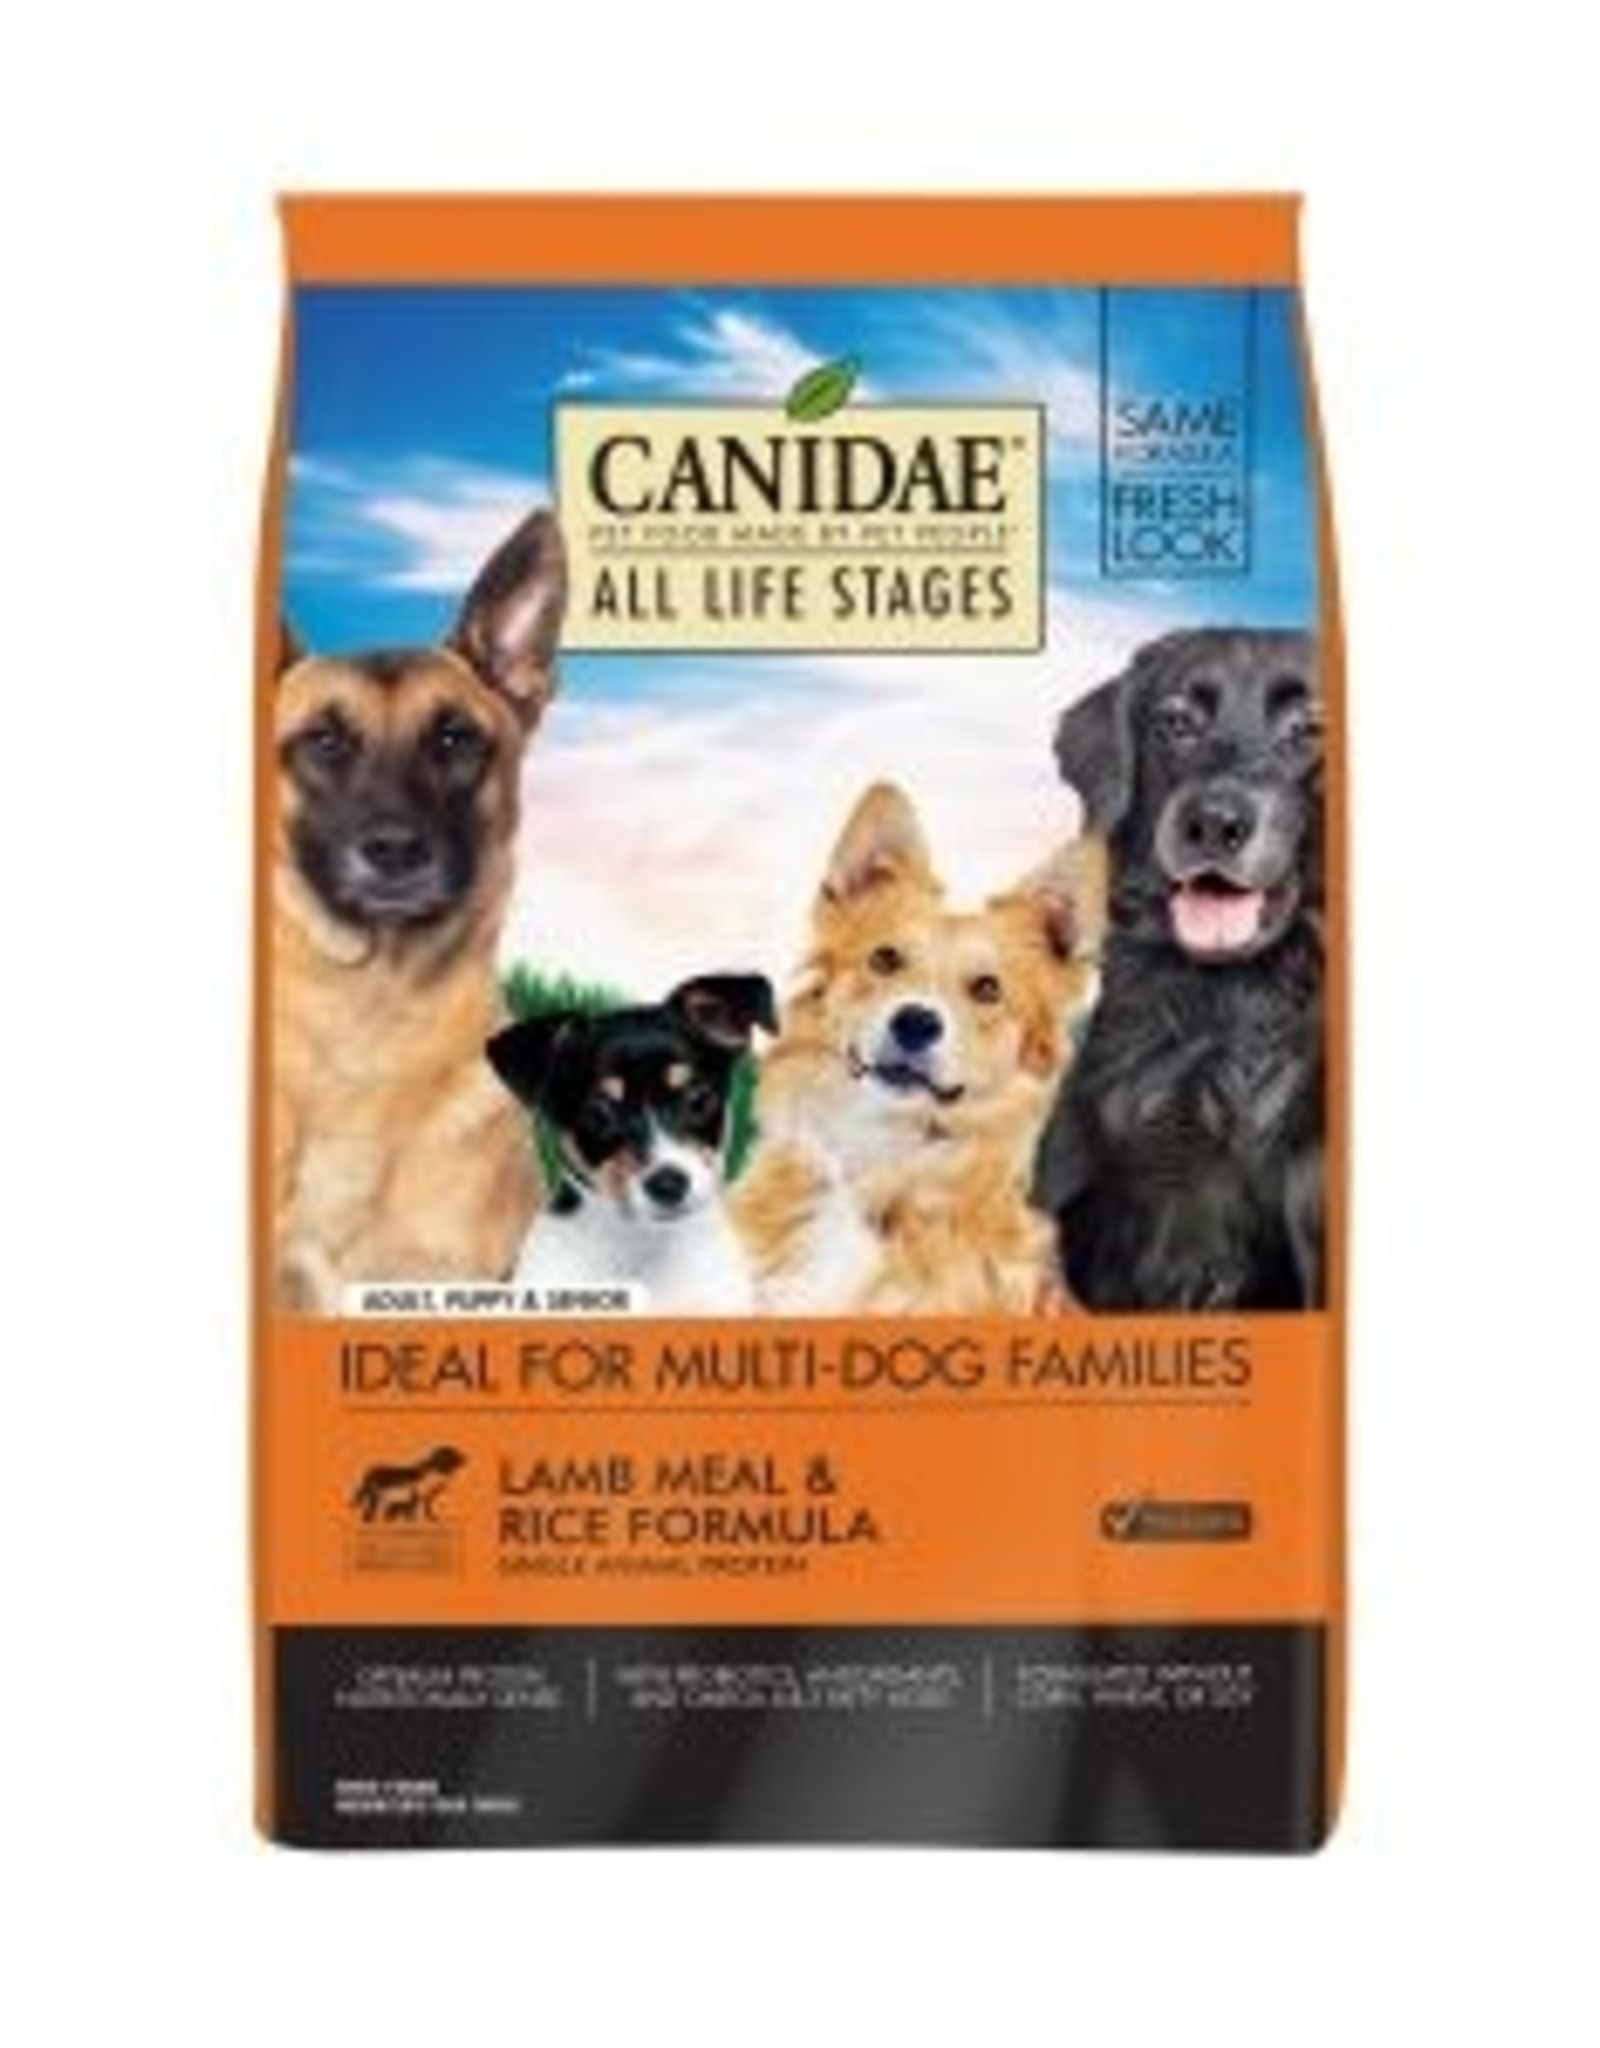 CANIDAE Dog All Life Stages with Lamb - Whole Grain 15lb